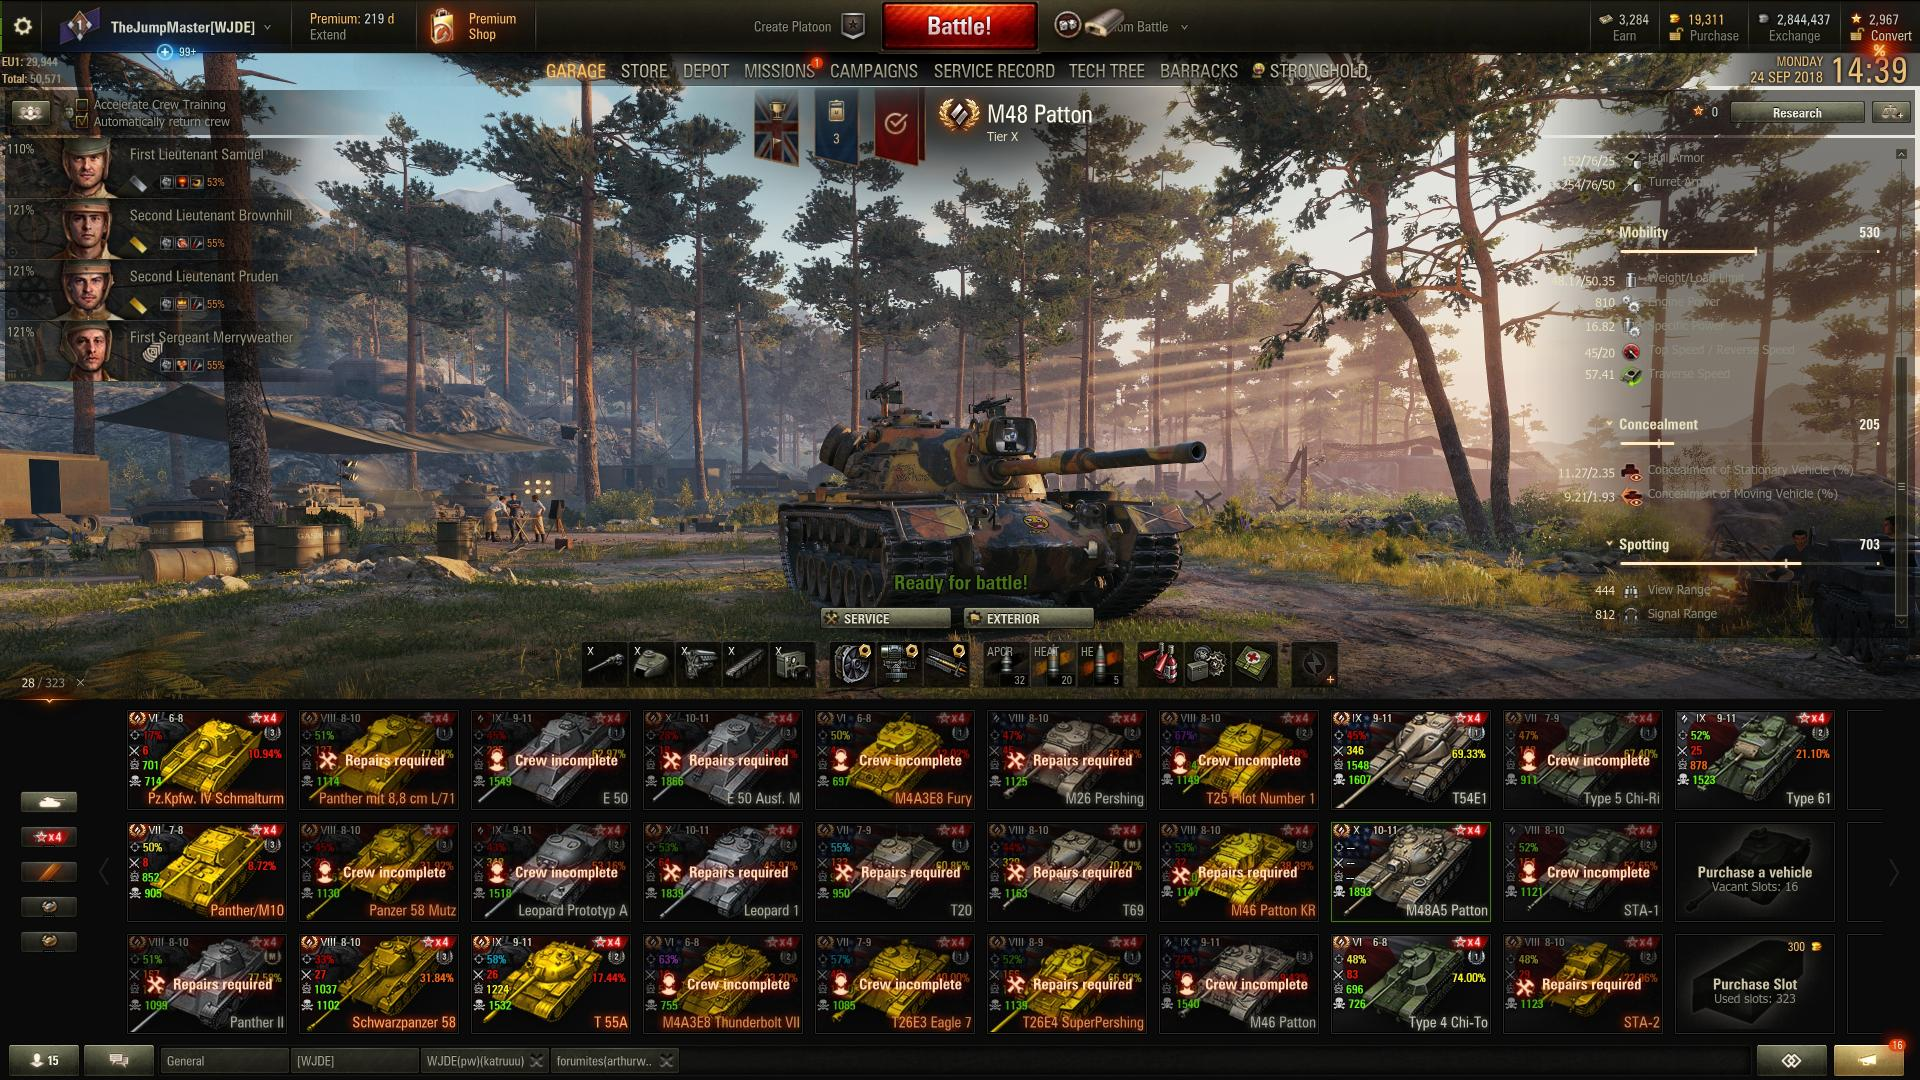 M48 Patton - Gameplay - World of Tanks official forum